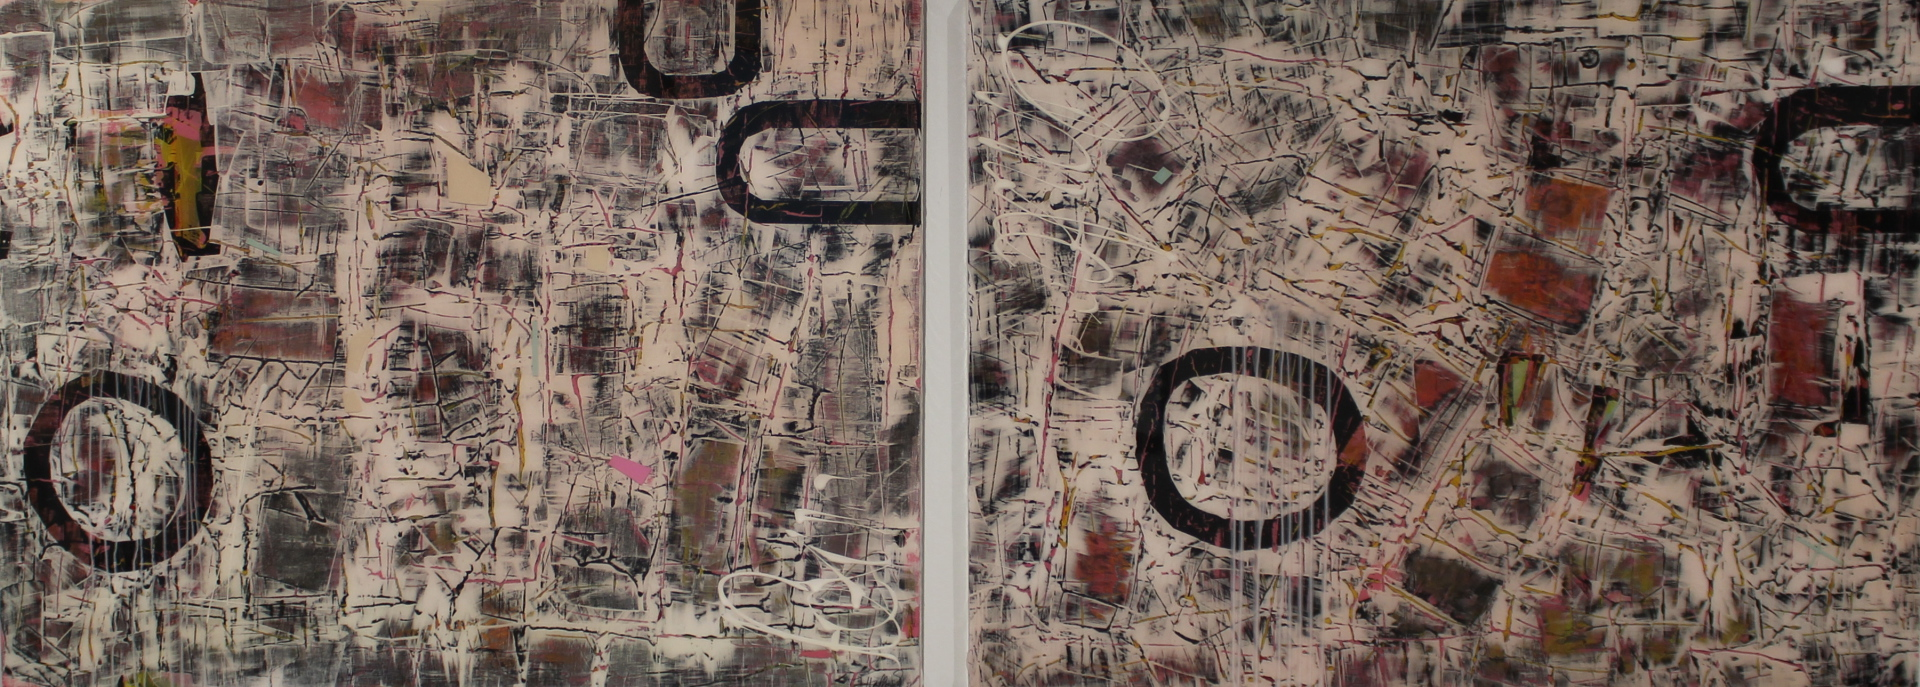 BERLIN ALEXANDERPLATZ II & III - 30X40 (2) - ACRYLIC/RESIN ON PANEL - 2012